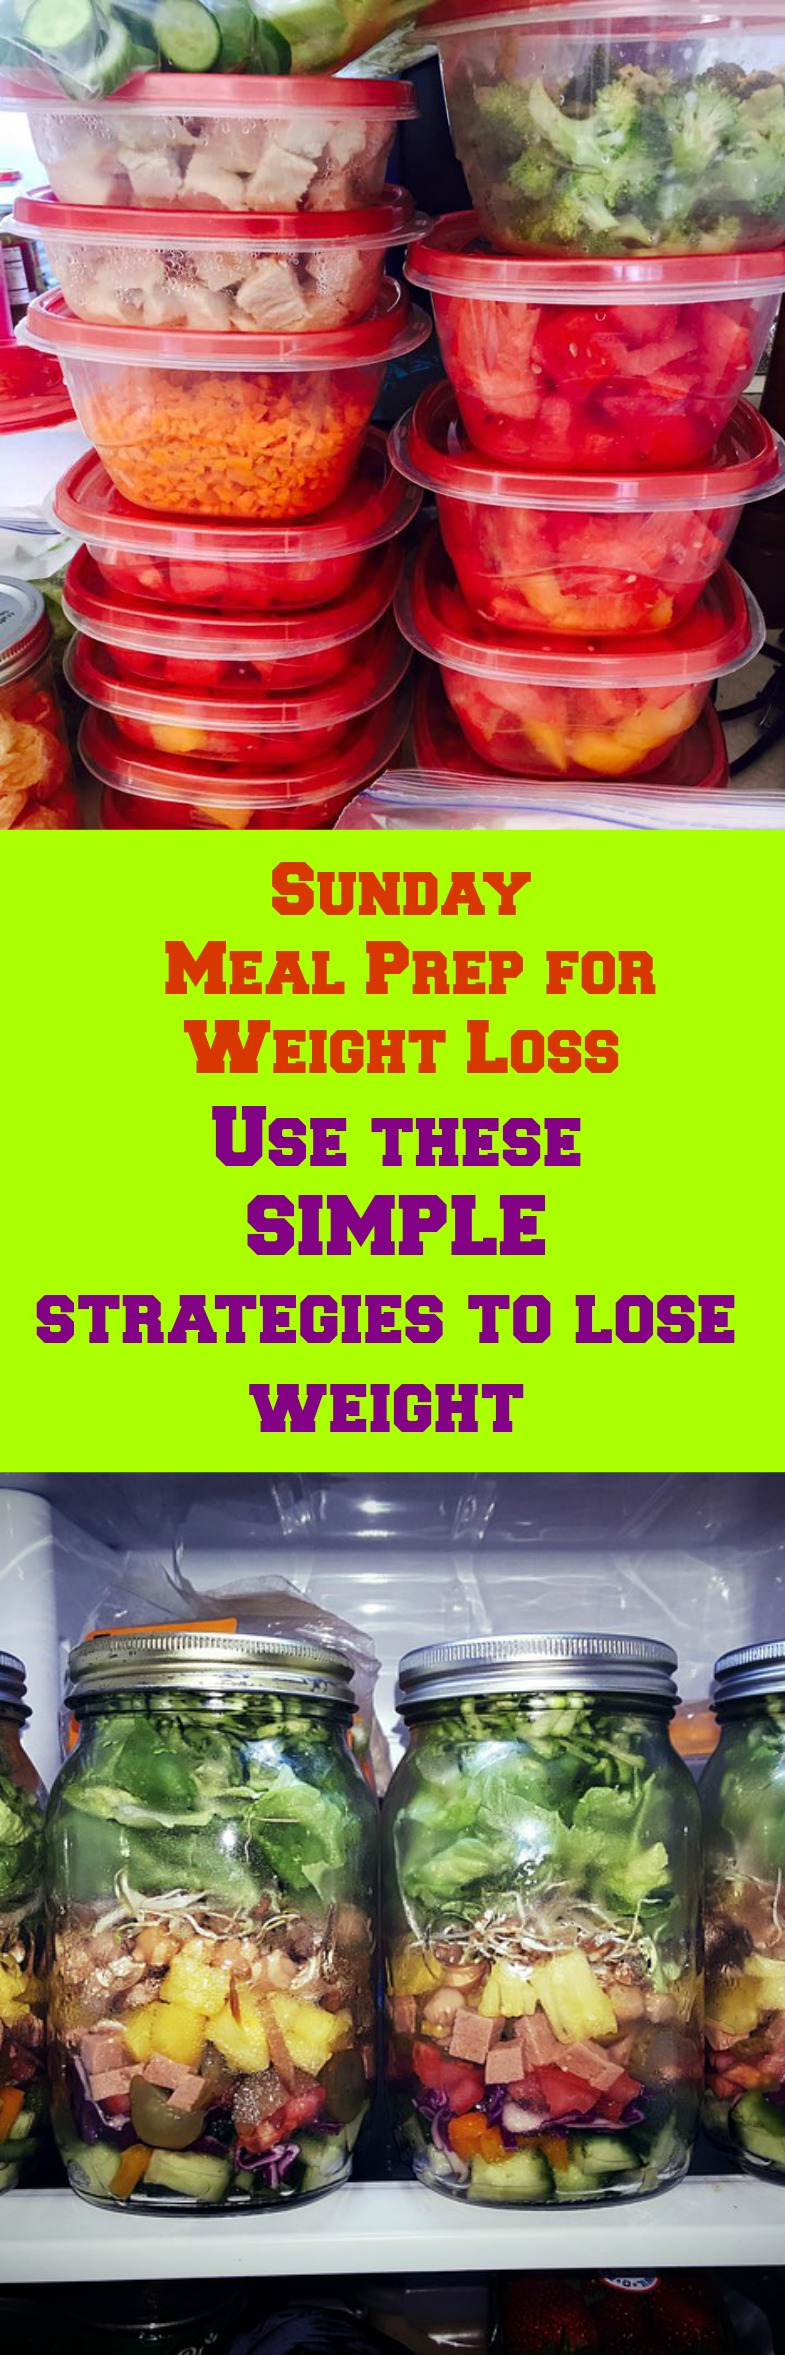 >Sunday Meal Prep for Weight Loss is your best task to achieve weight loss success! You must Use our strategies to be successful with your weight loss goals.